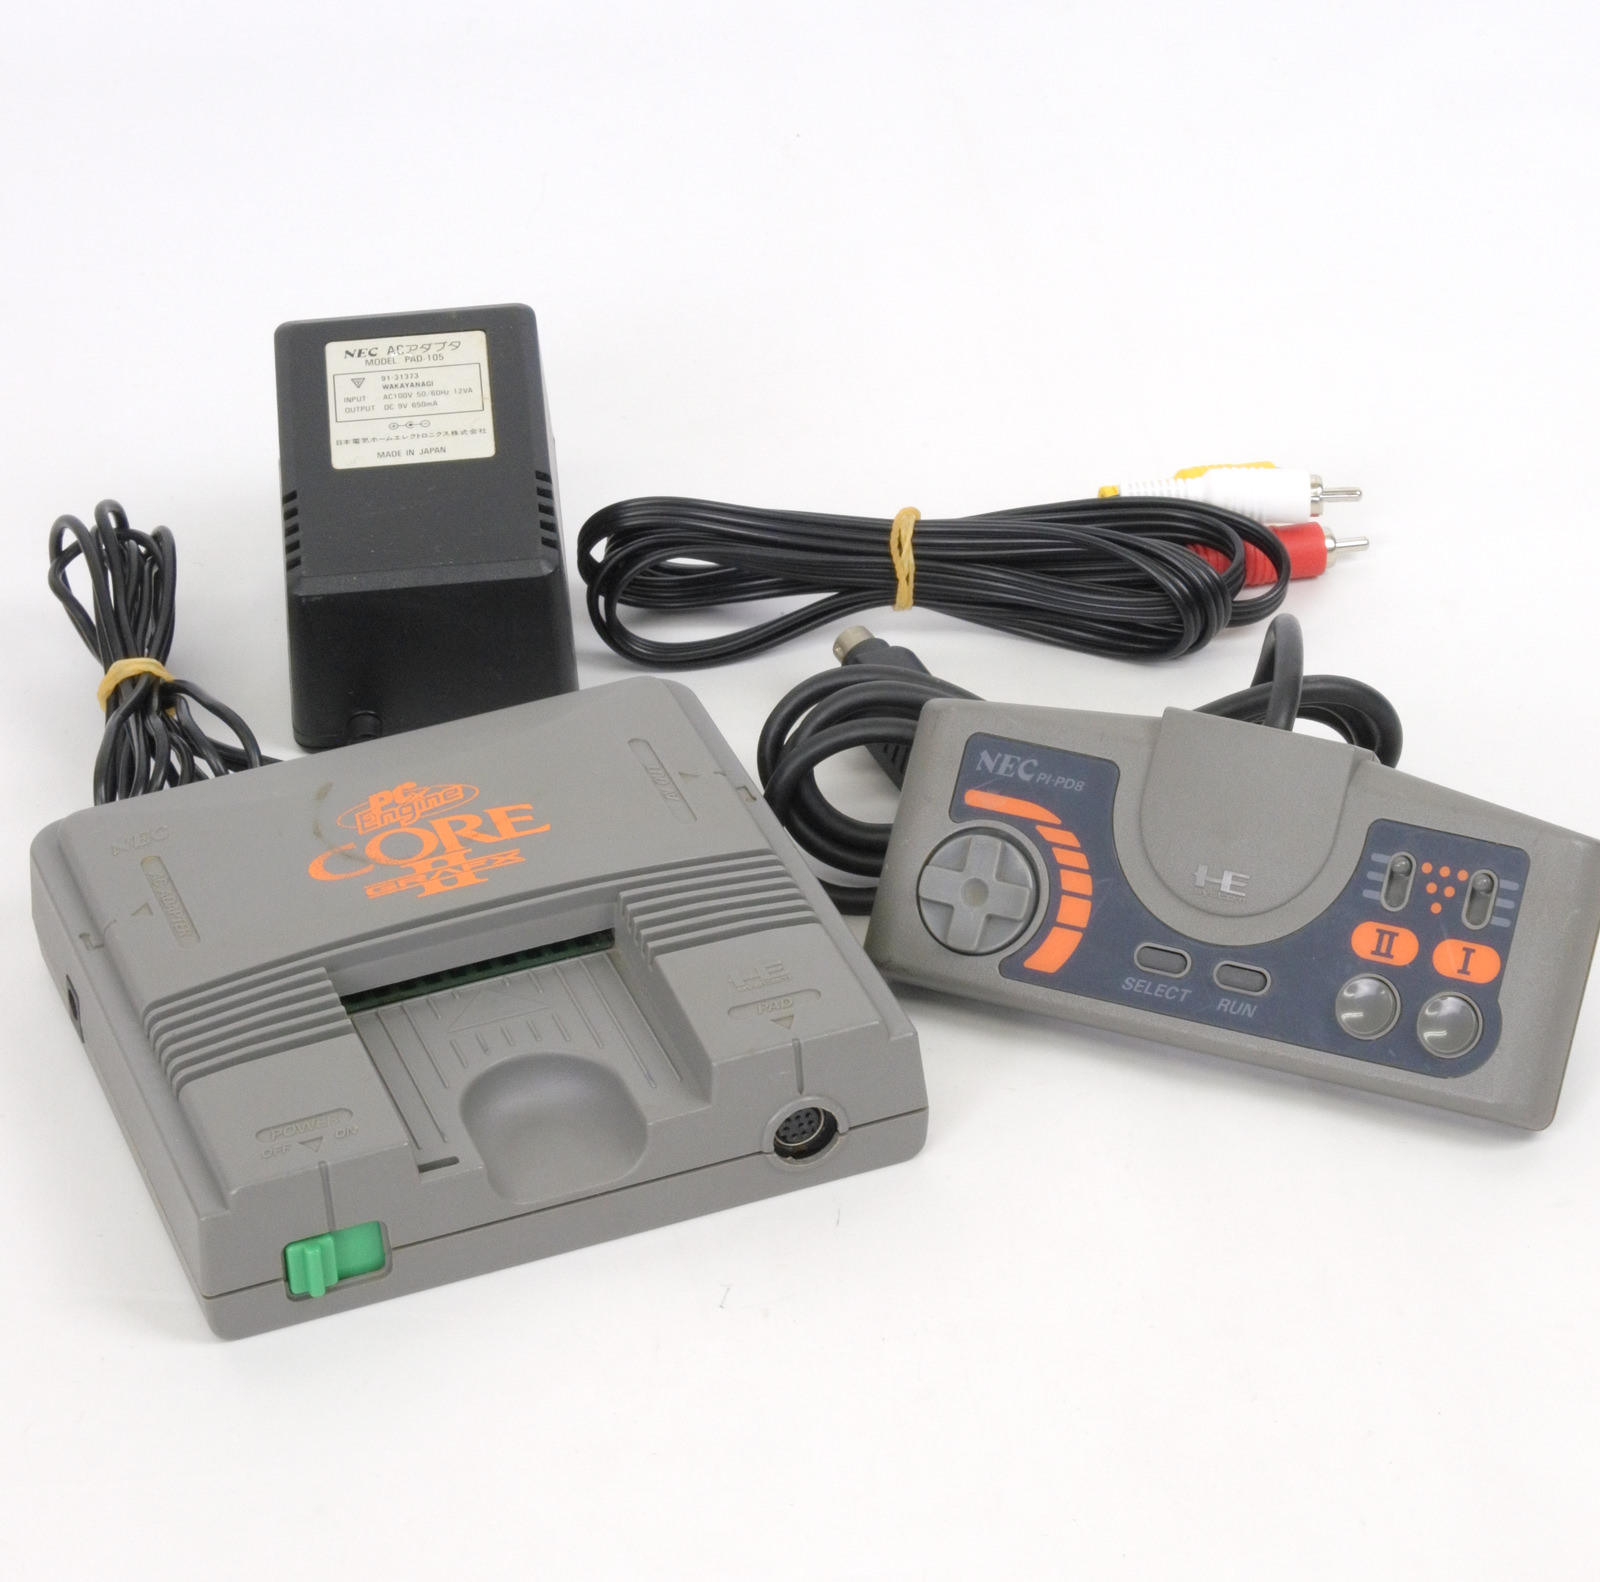 Details about PC-Engine CORE GRAFX II 2 PI-TG7 Console System Ref/15065793A  JAPAN Tested